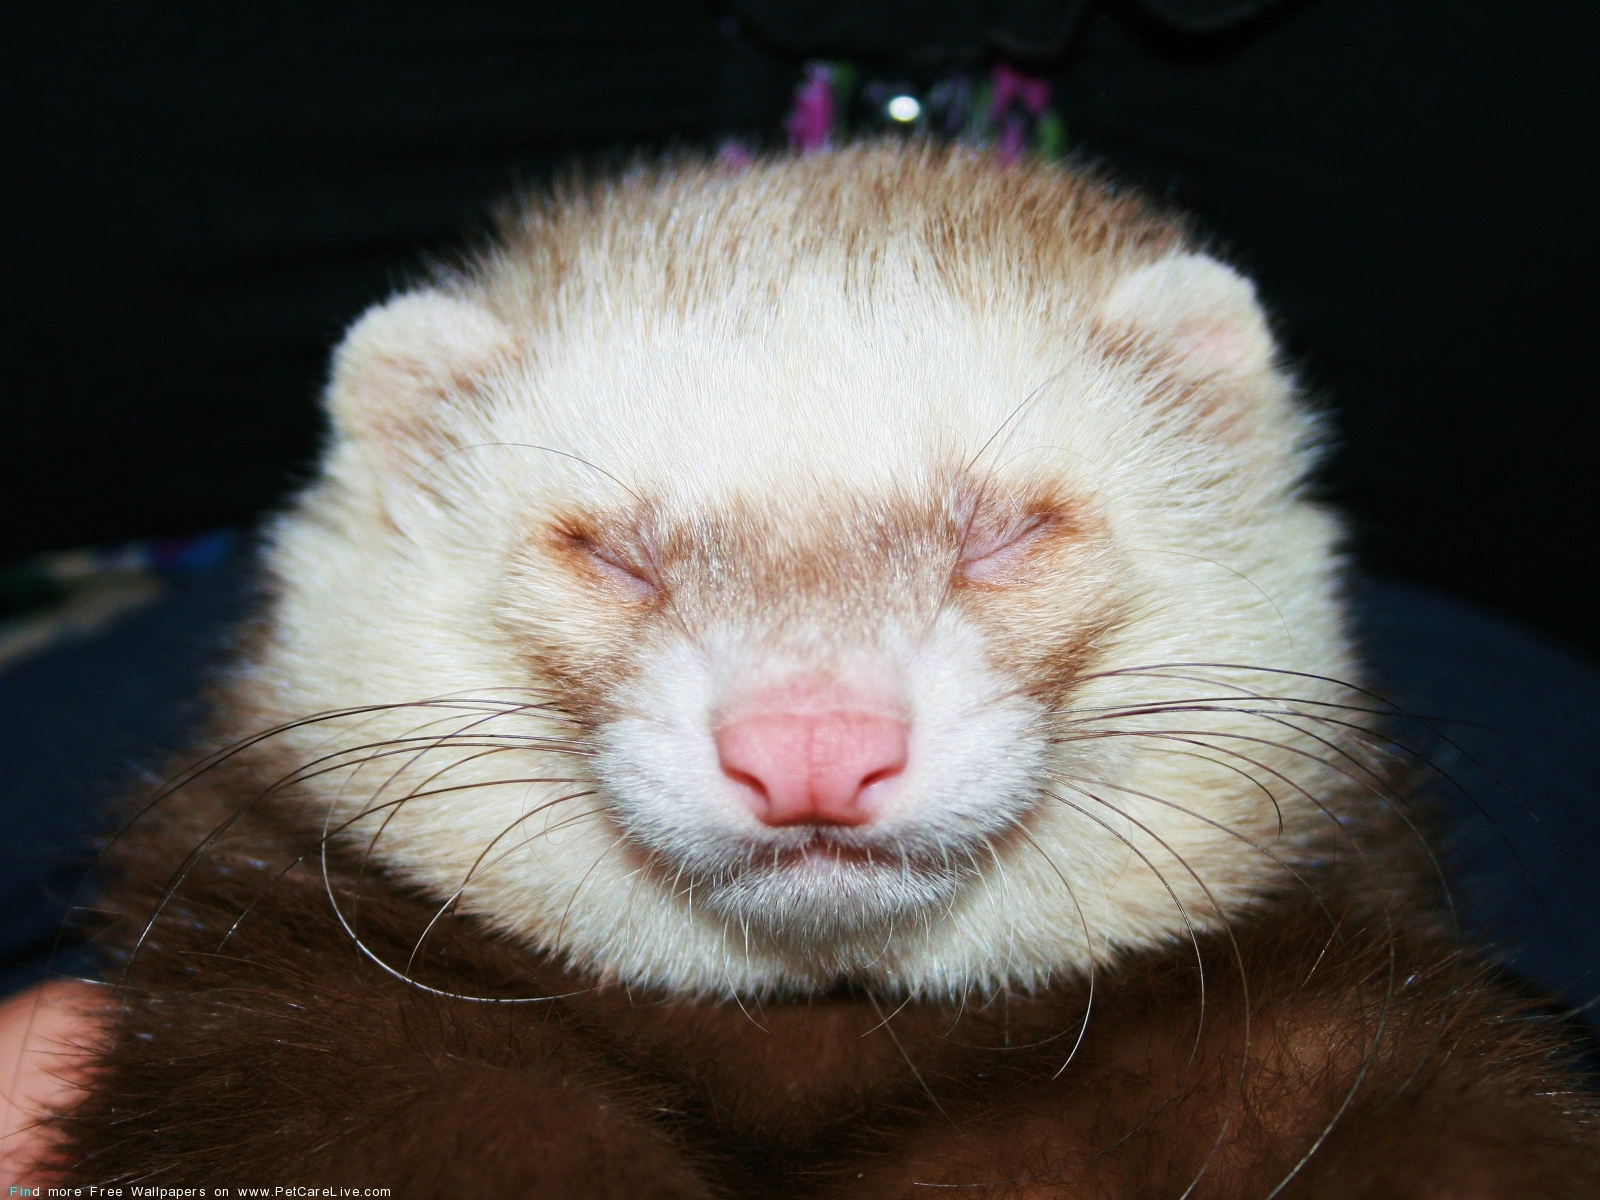 ferret face wallpaper background - photo #17